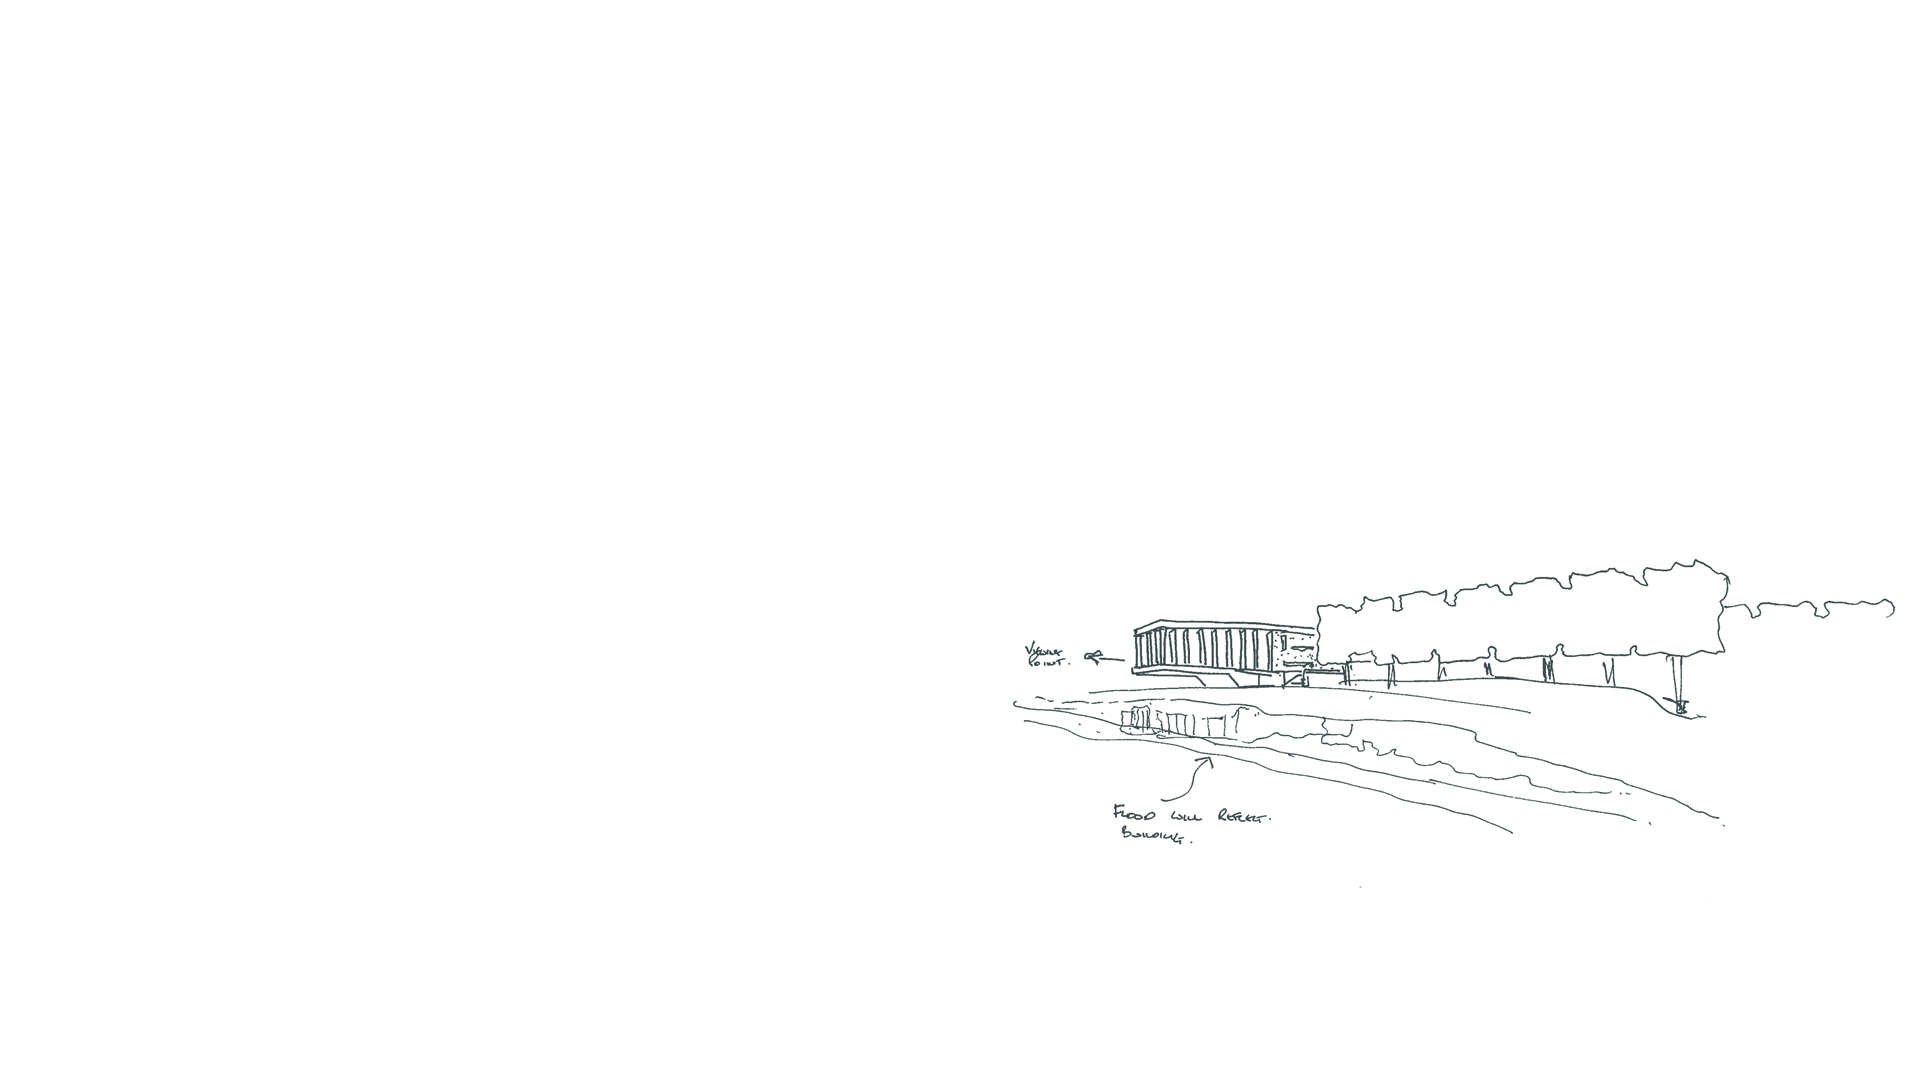 Concept sketch by Richard Brown of the Kulturhaus in Alzenau Germany, showing the main concert hall projecting into the parkland